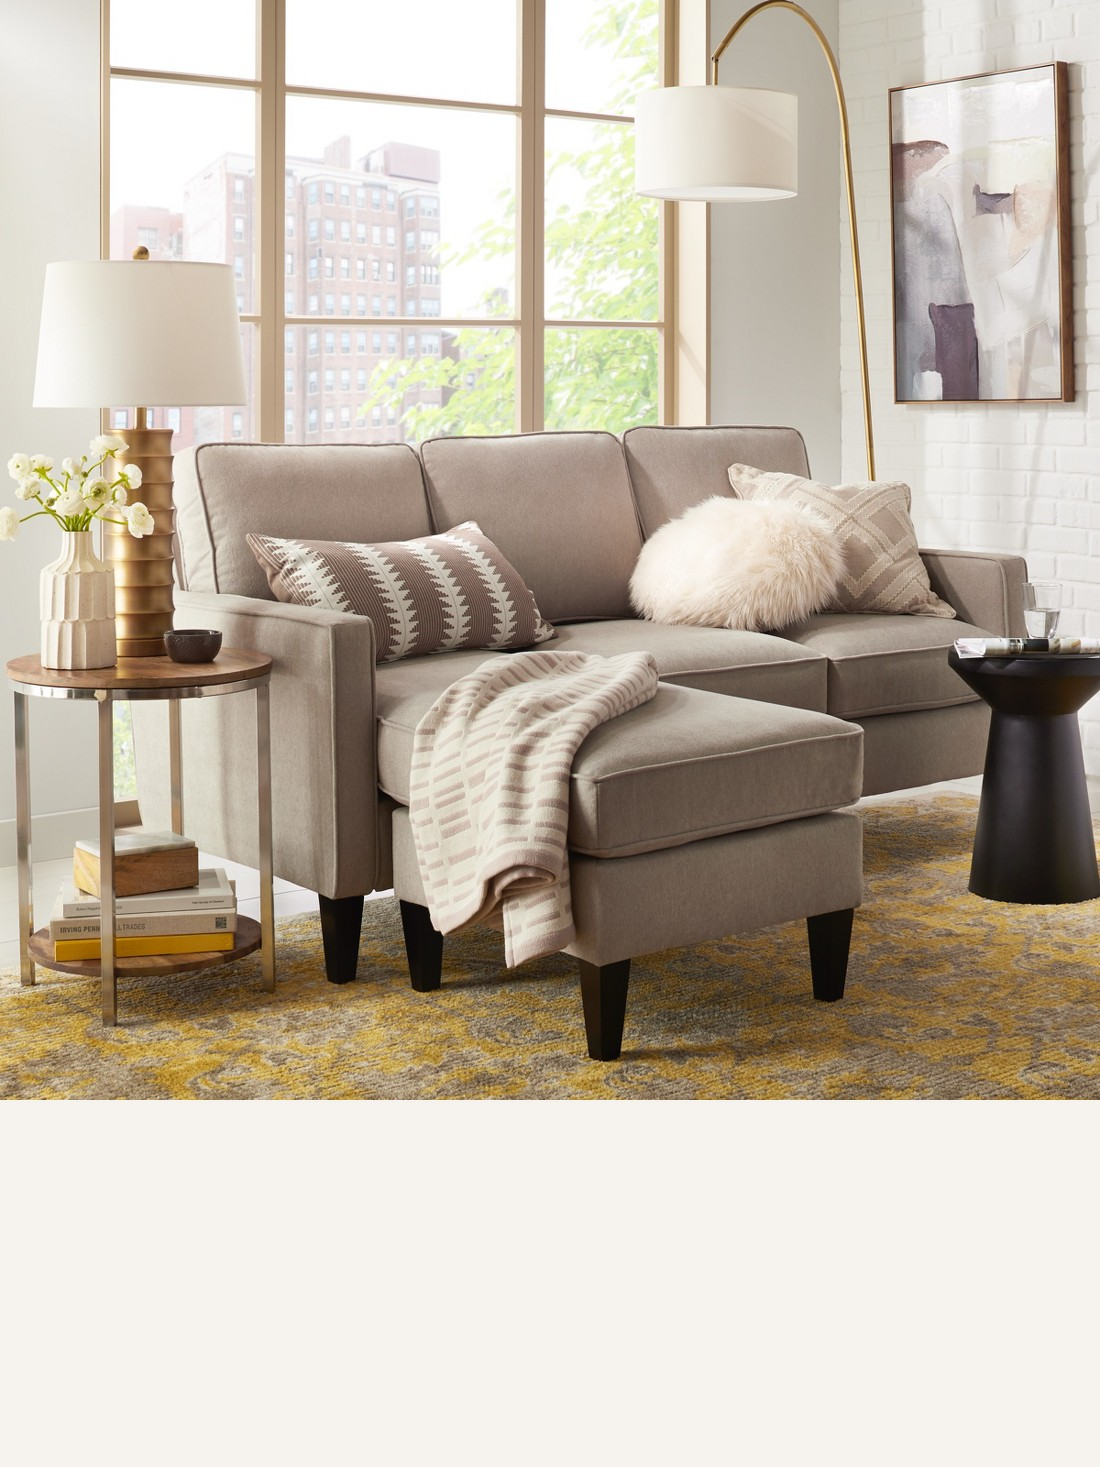 Smaller sectionals offer lots of comfy seating for small spaces while larger ones are best for open floor plans browse sectionals · sleeper sofa